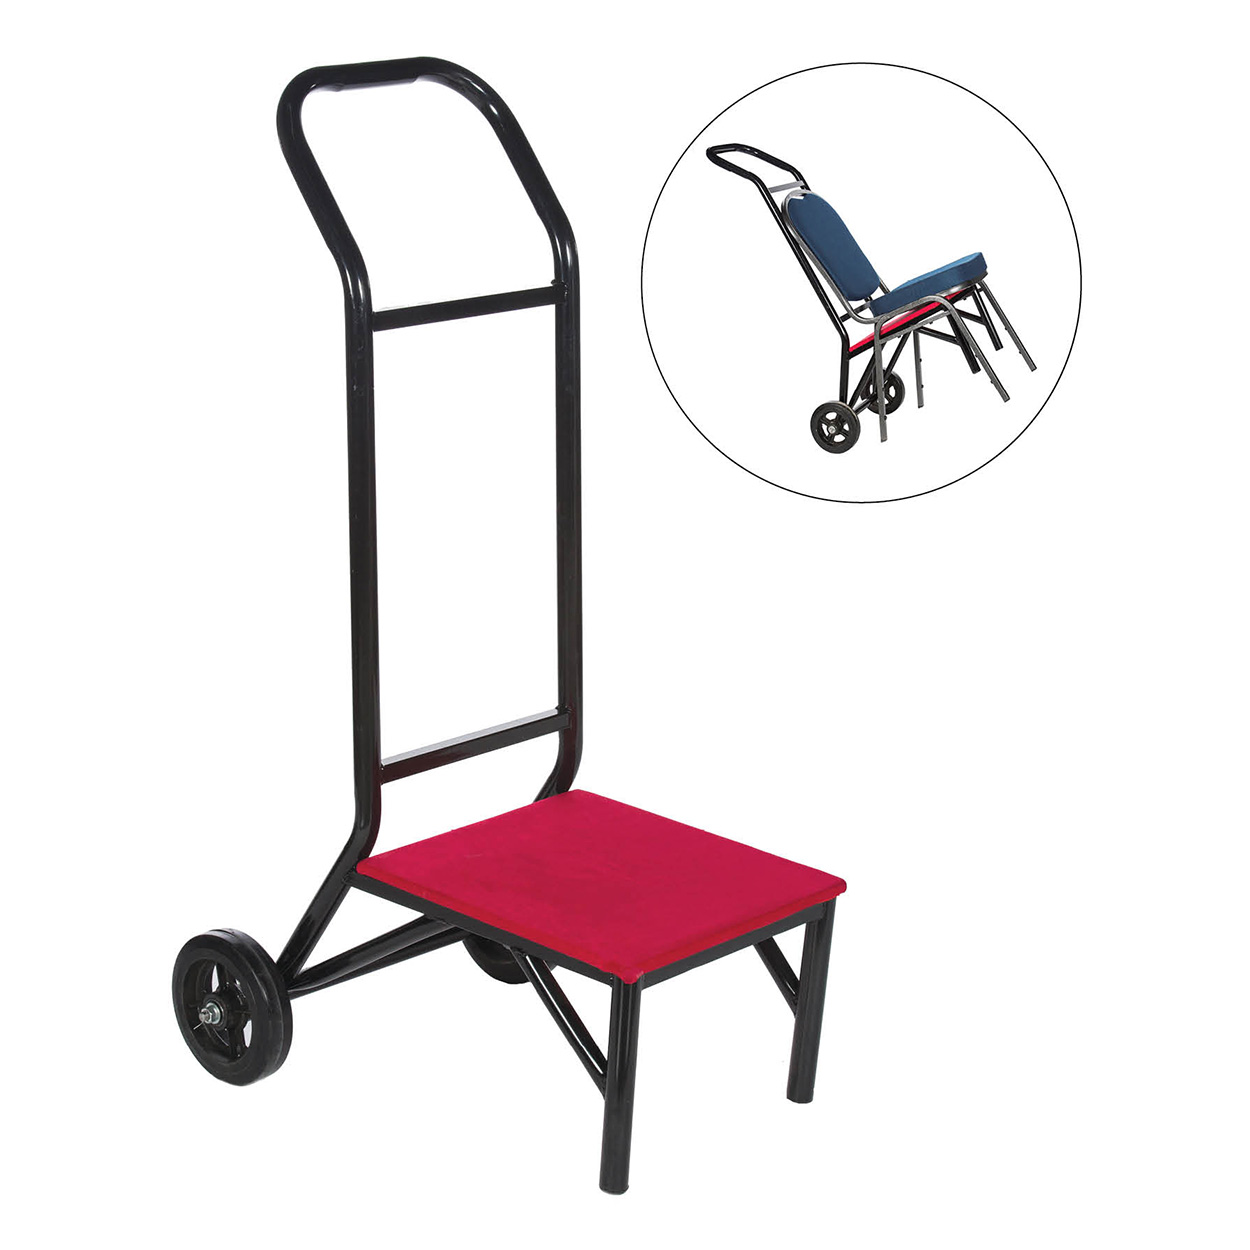 2 Wheels stacking chairs dolly